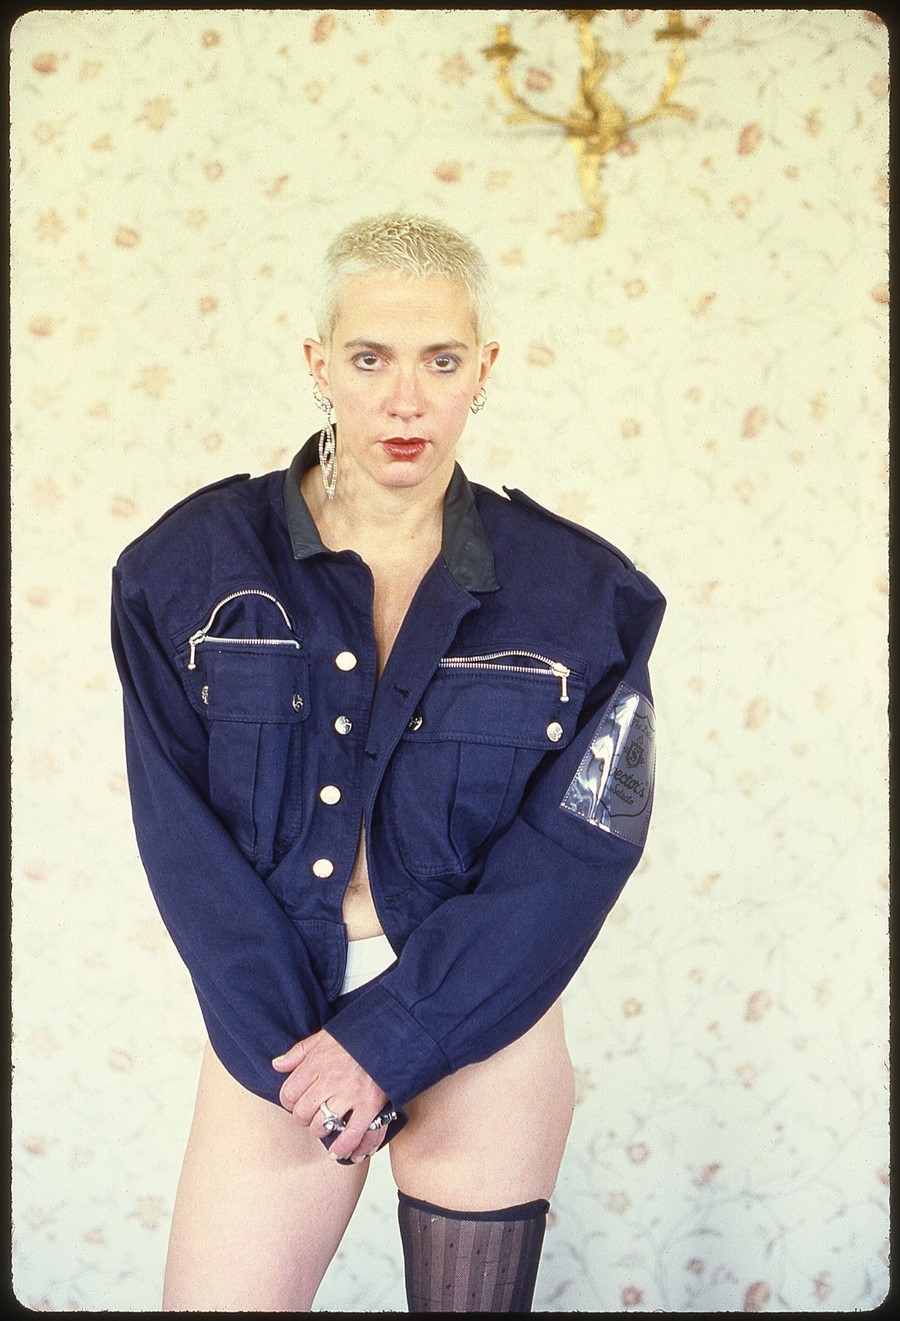 Kathy Acker at the Gramercy Park Hotel, 1988